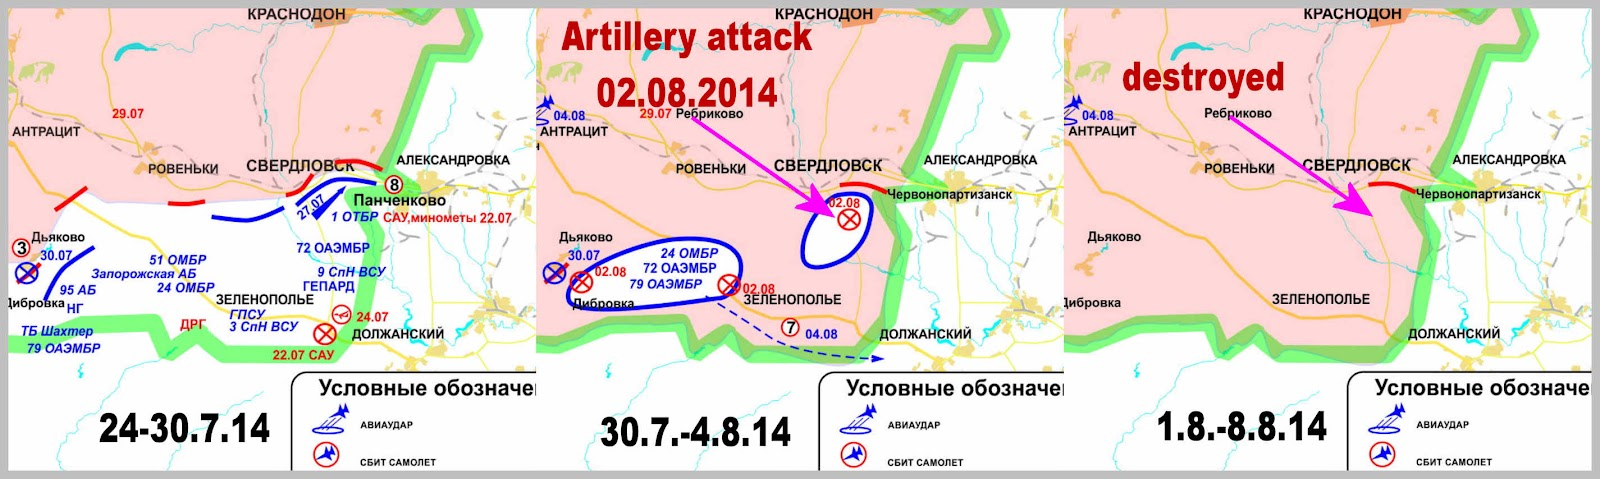 Battles southeast of Sverdlovsk from mid-July to early August 2014 (map from pro-russian sites)